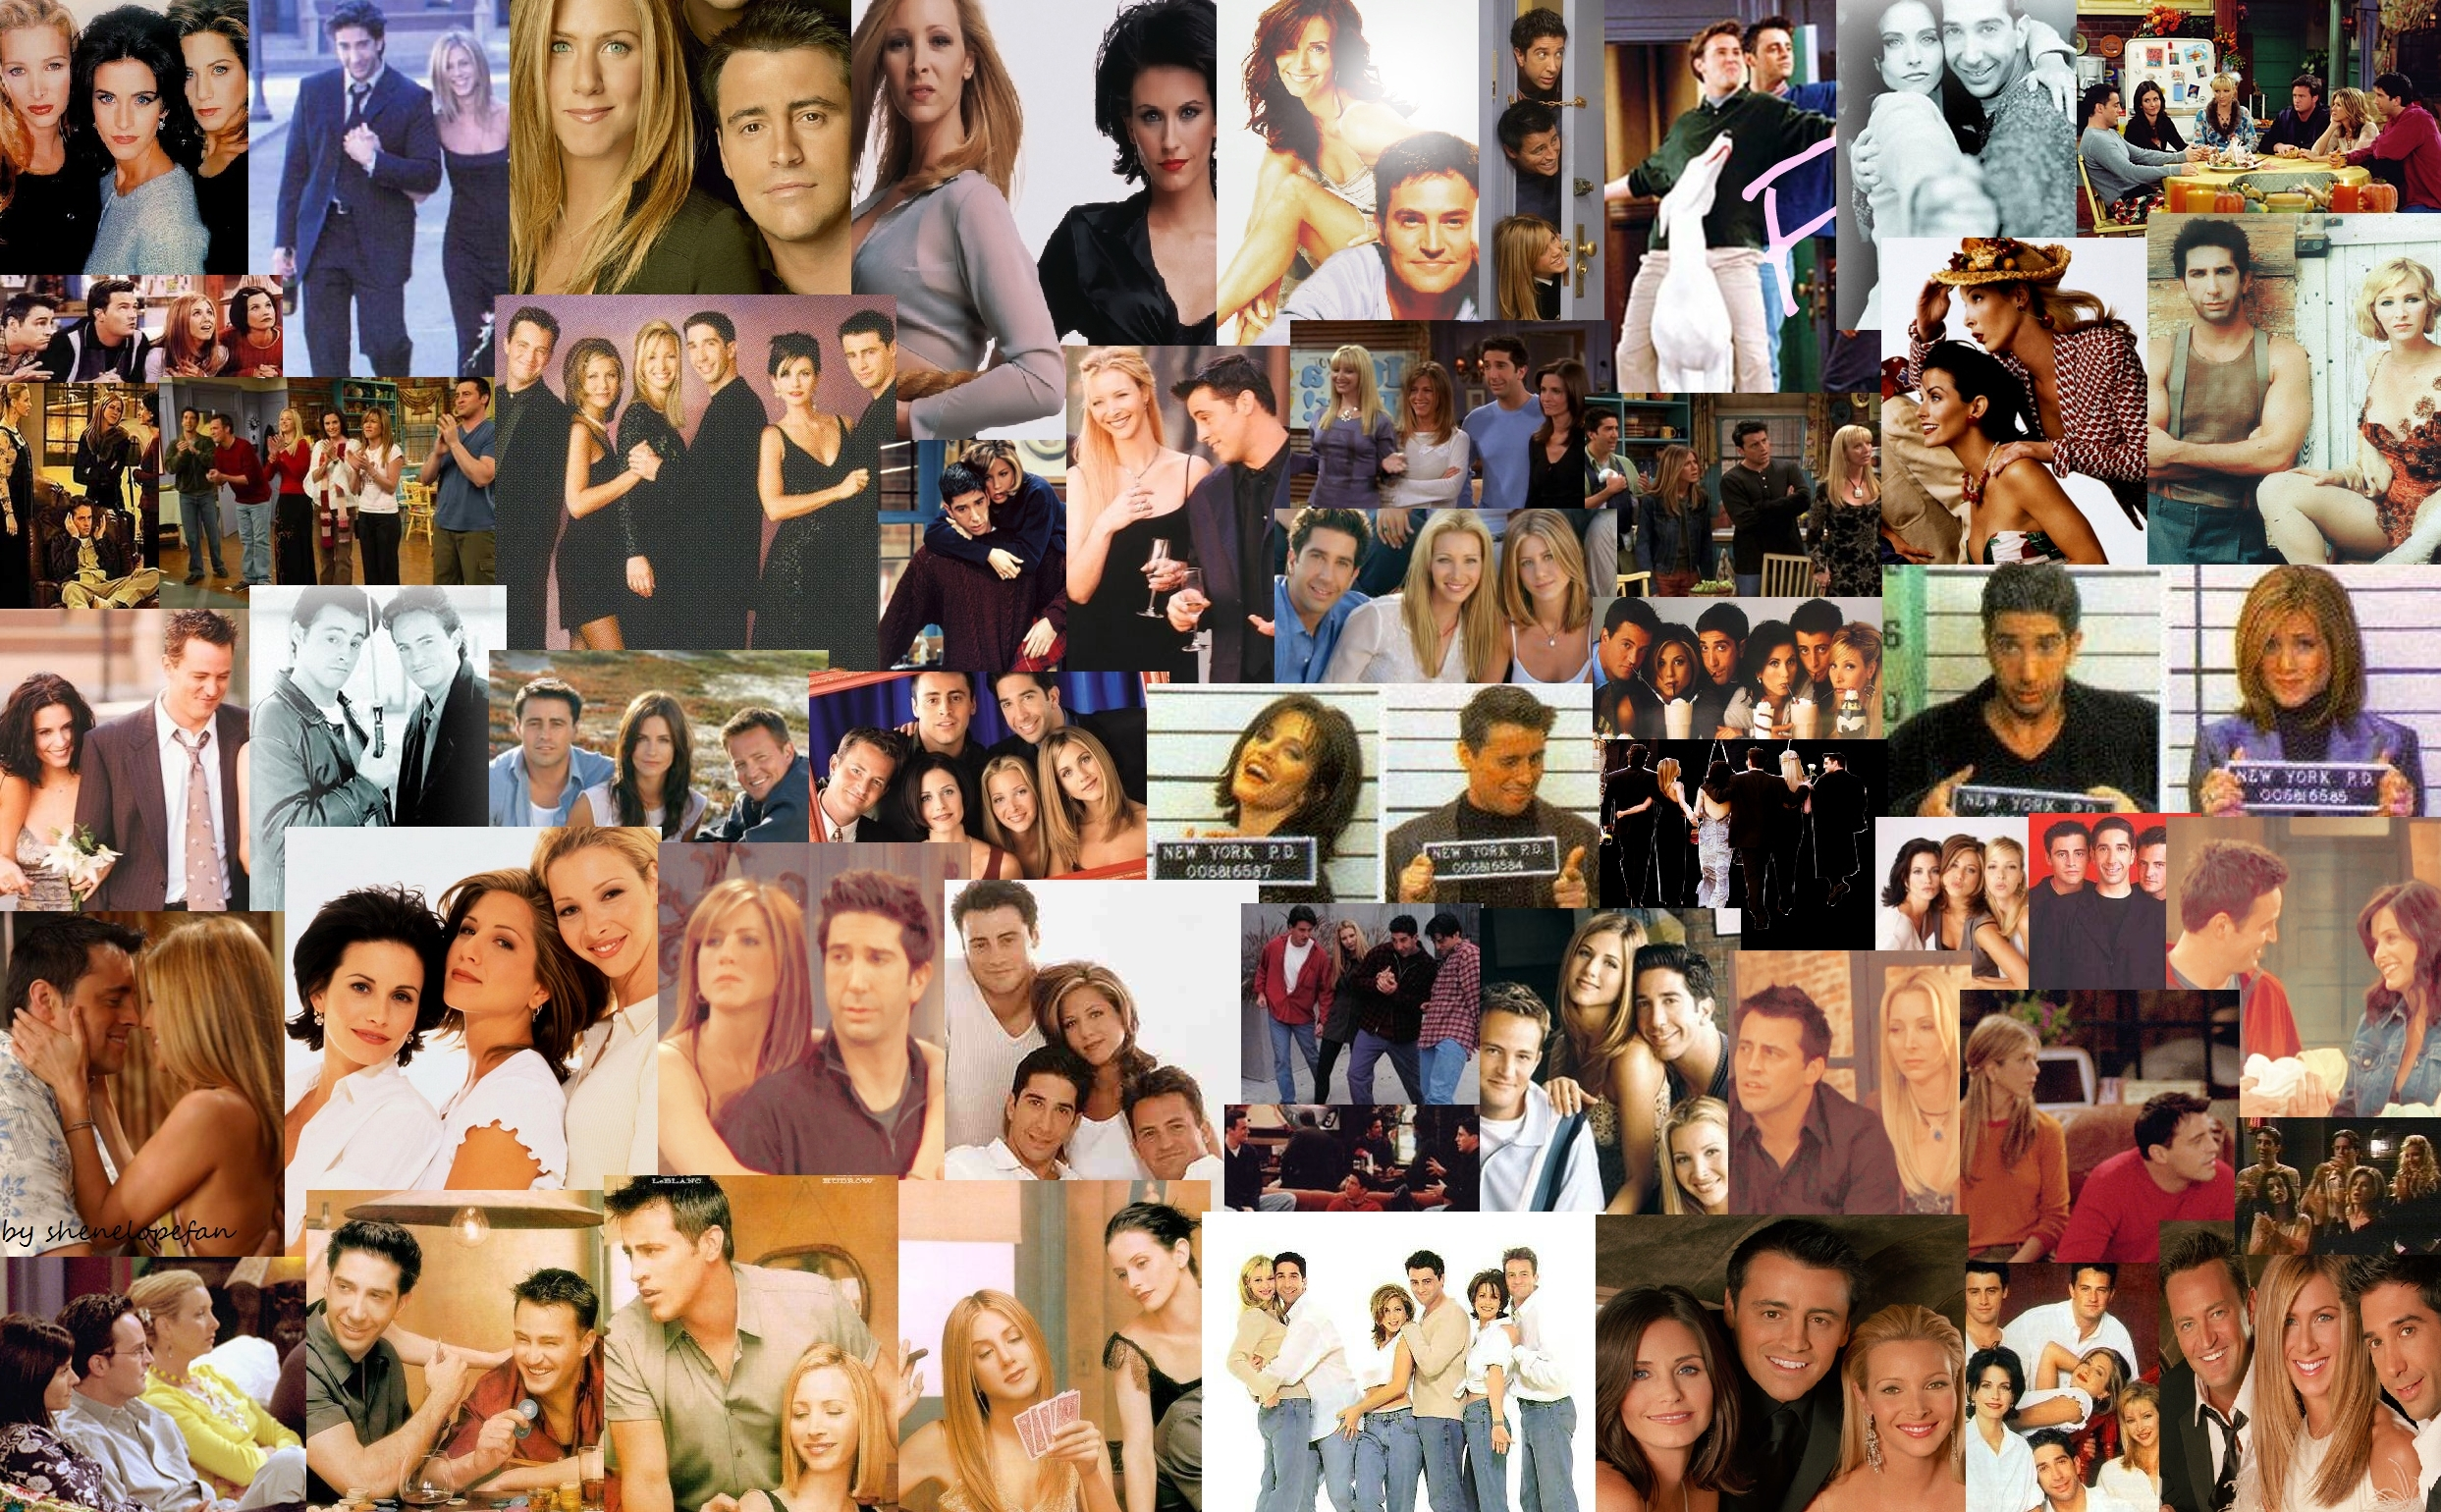 Friends Images Wallpapers HD Wallpaper And Background Photos